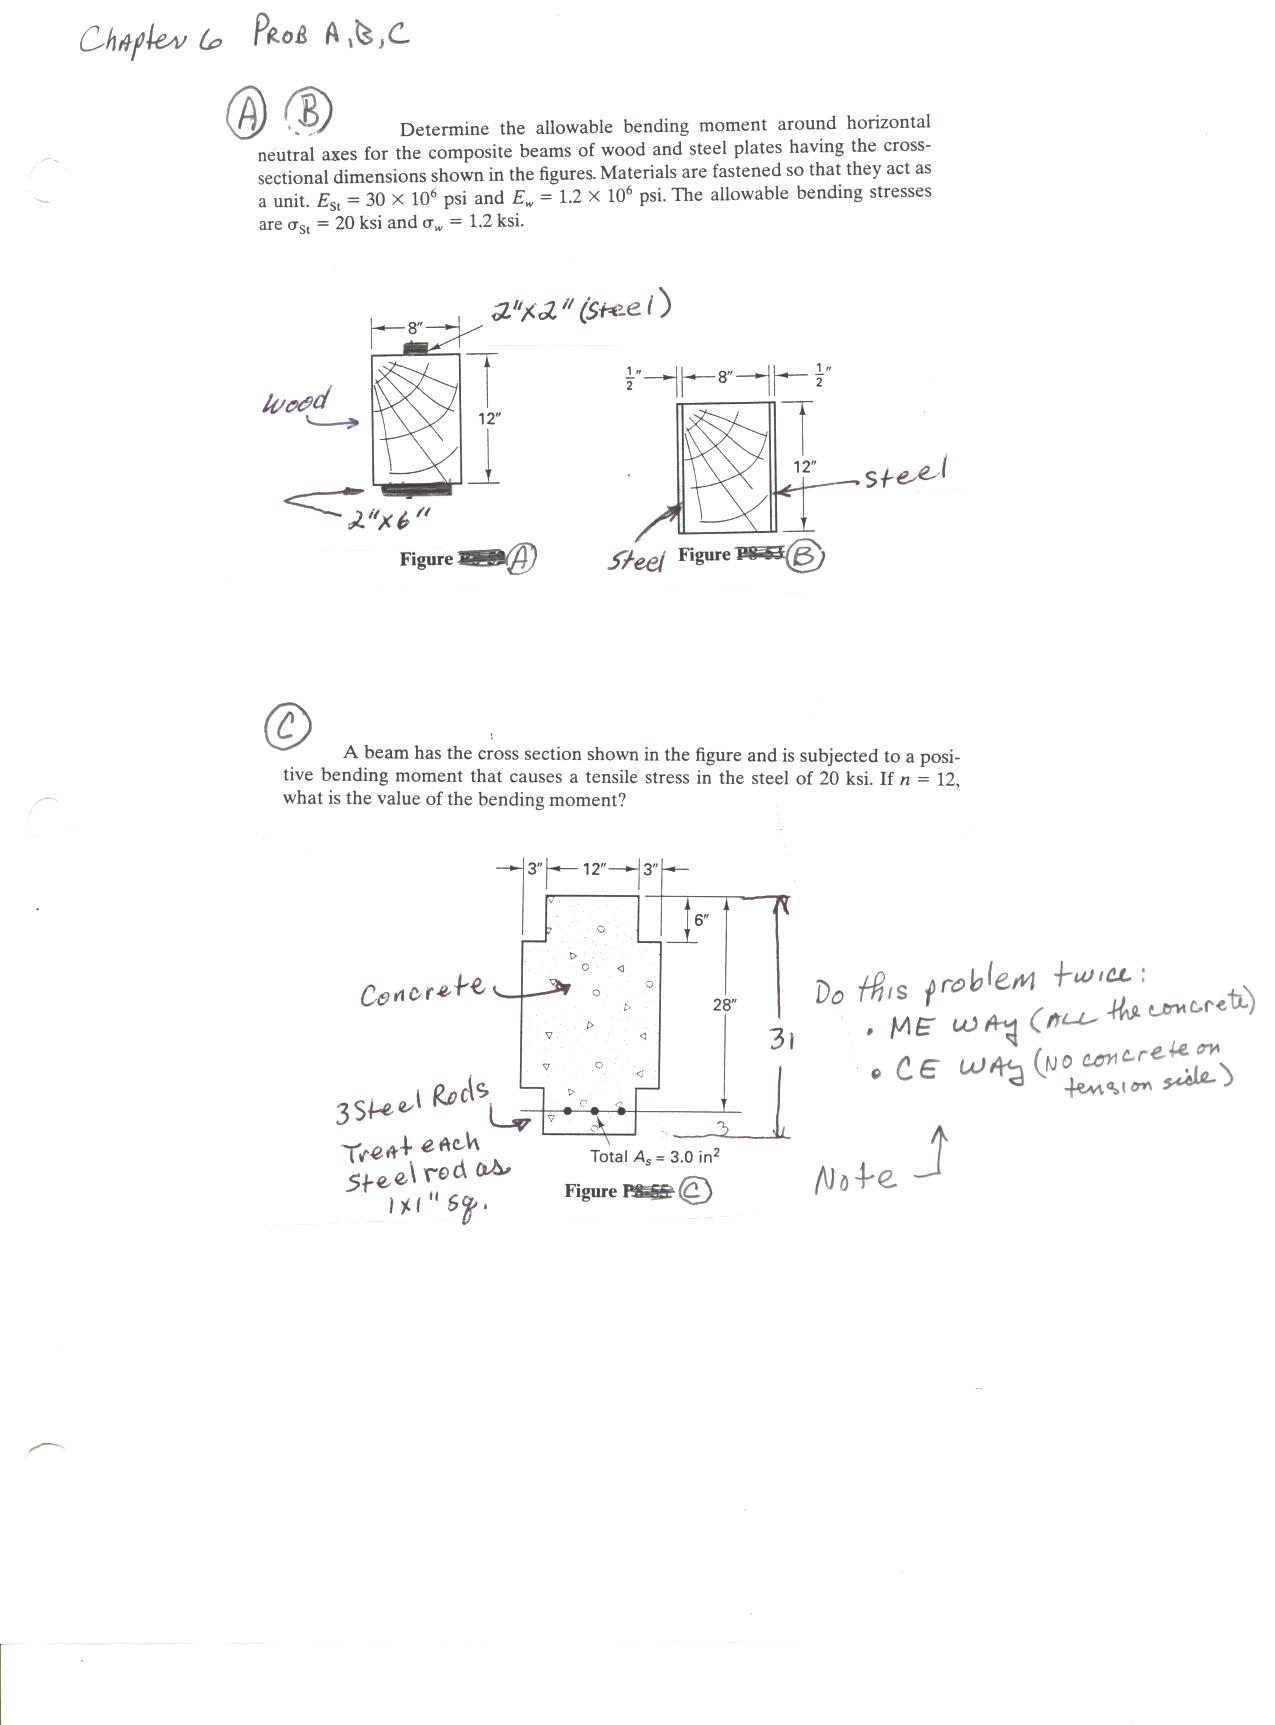 worksheet Cell Cycle Coloring Worksheet the cell cycle coloring worksheet cartoon character pictures free 1 determine allowable bending moment around horizontal netural axes composite beams wood s q7933651 w